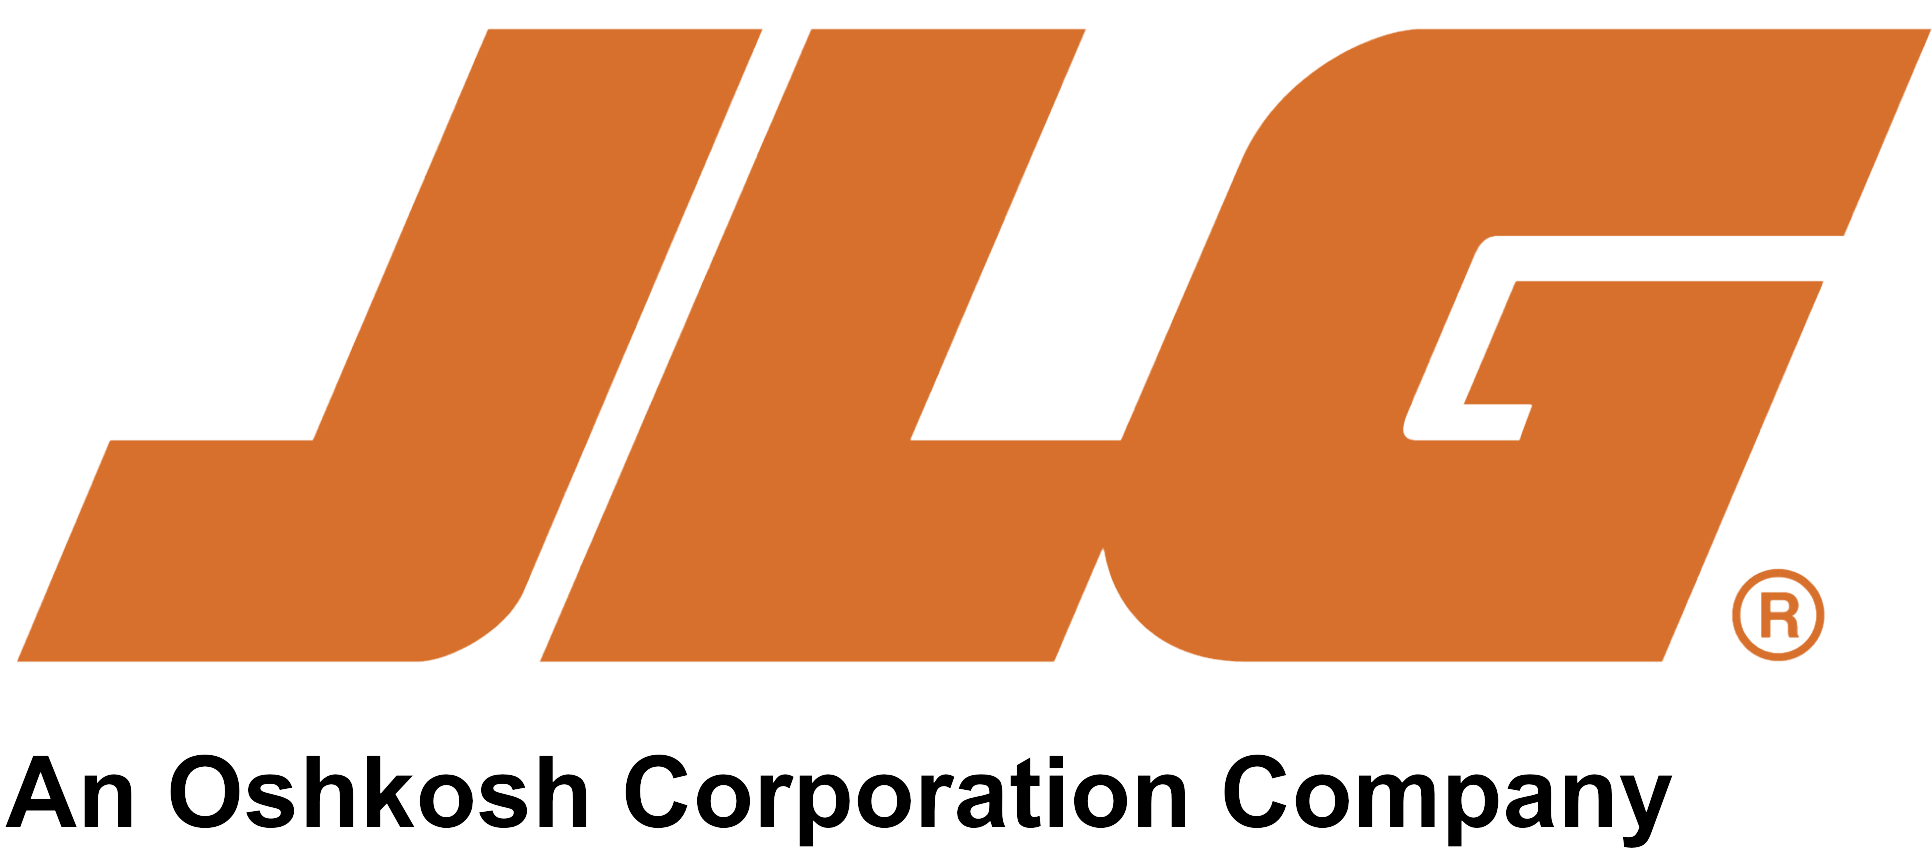 JLG, An Oshkosh Corporation Company Logo